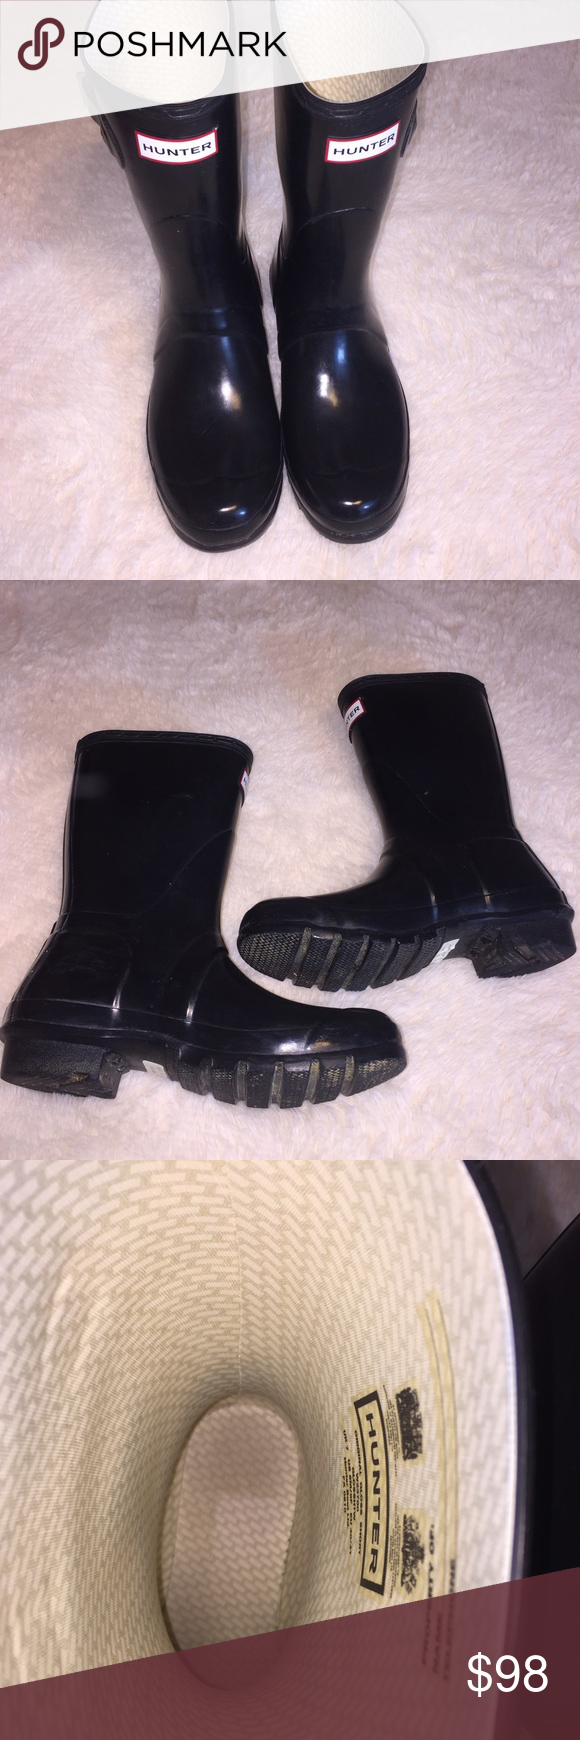 Short style hunter rain boots Short style black hunter rain boots comes right below the calf. In excellent condition! Great for snow or rain.  11 inches tall. Size 9. Hunter Shoes Winter & Rain Boots